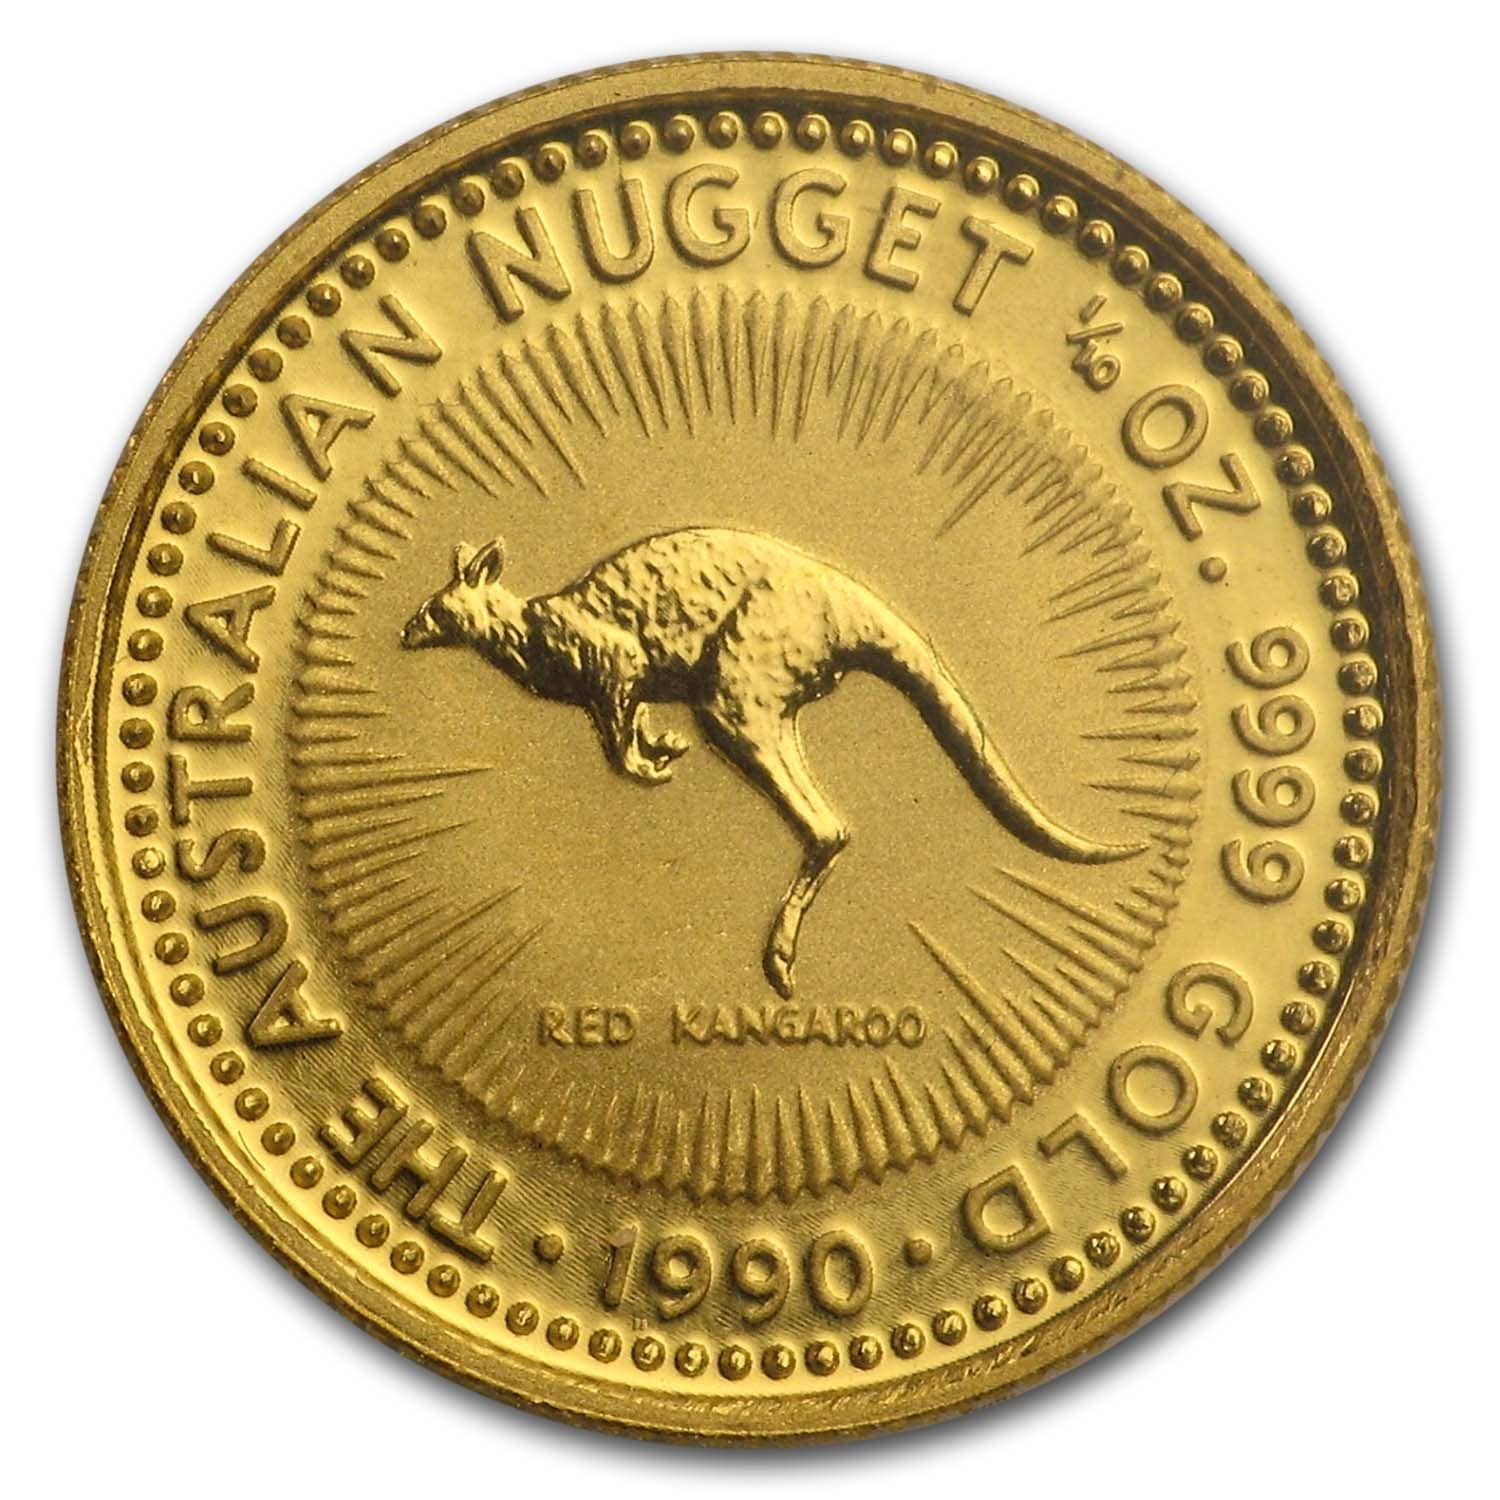 1990 1/10 oz Australian Gold Nugget